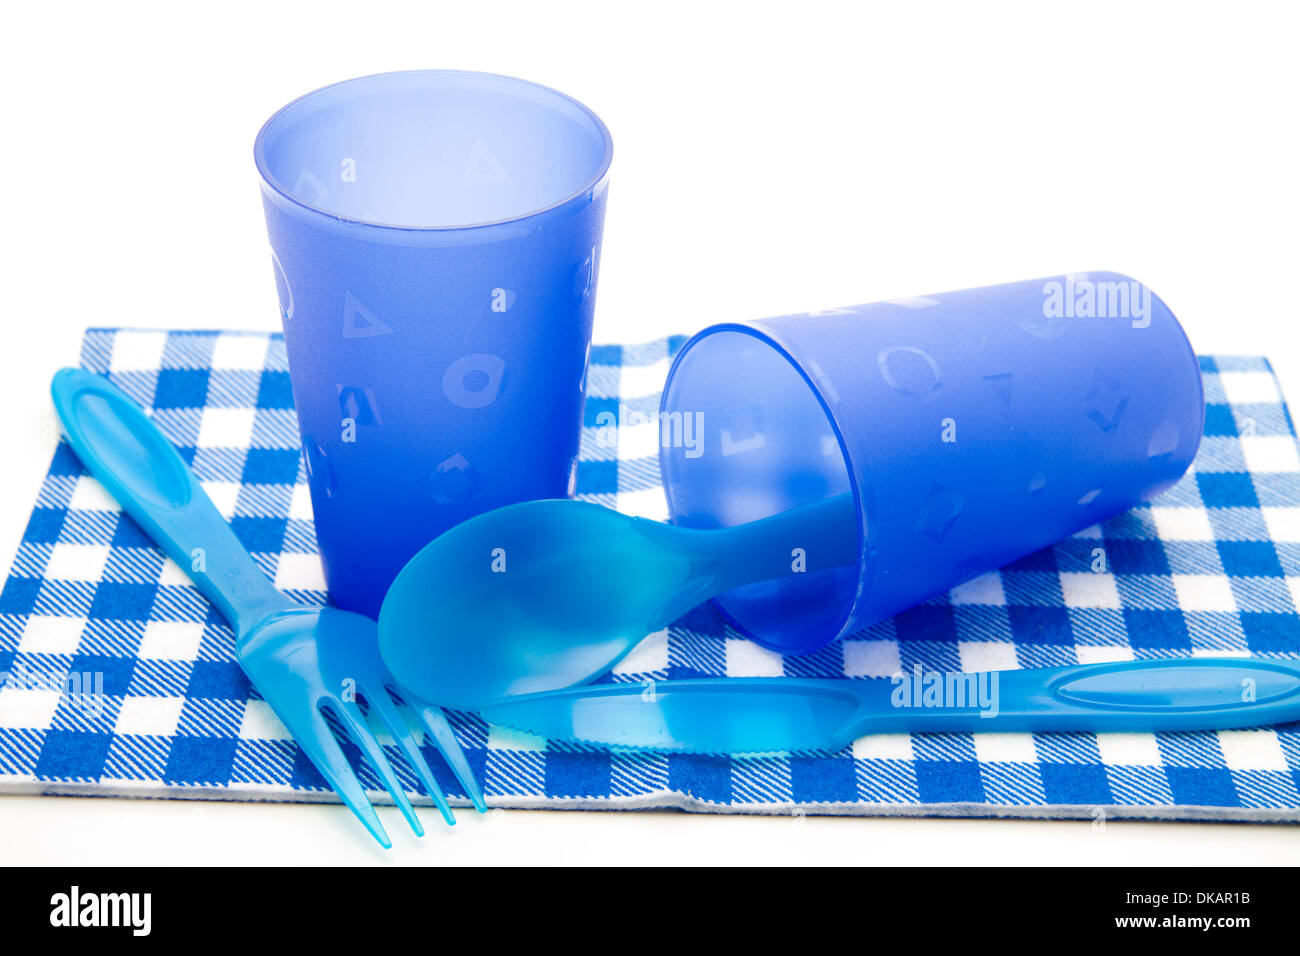 Blue drinking mugs with cutlery - Stock Image